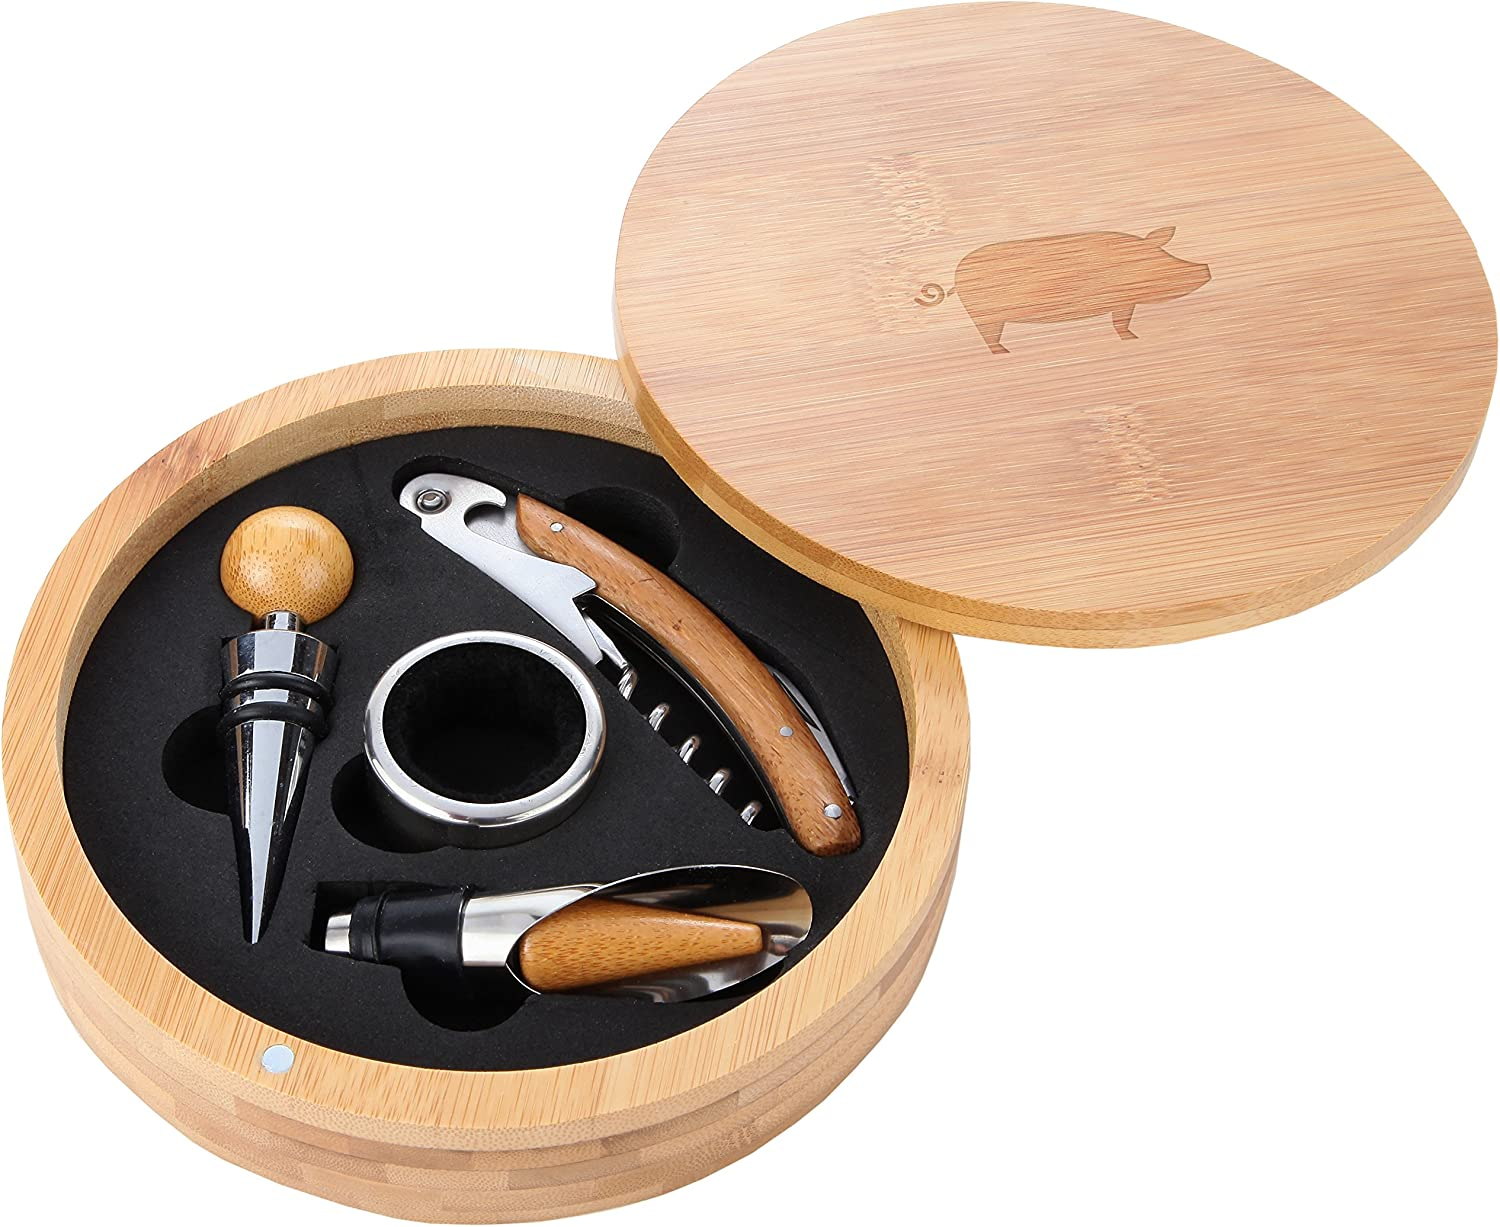 Pig Wooden Accessories Company Wine Set - Portable Our shop most 25% OFF popular Tool Acc